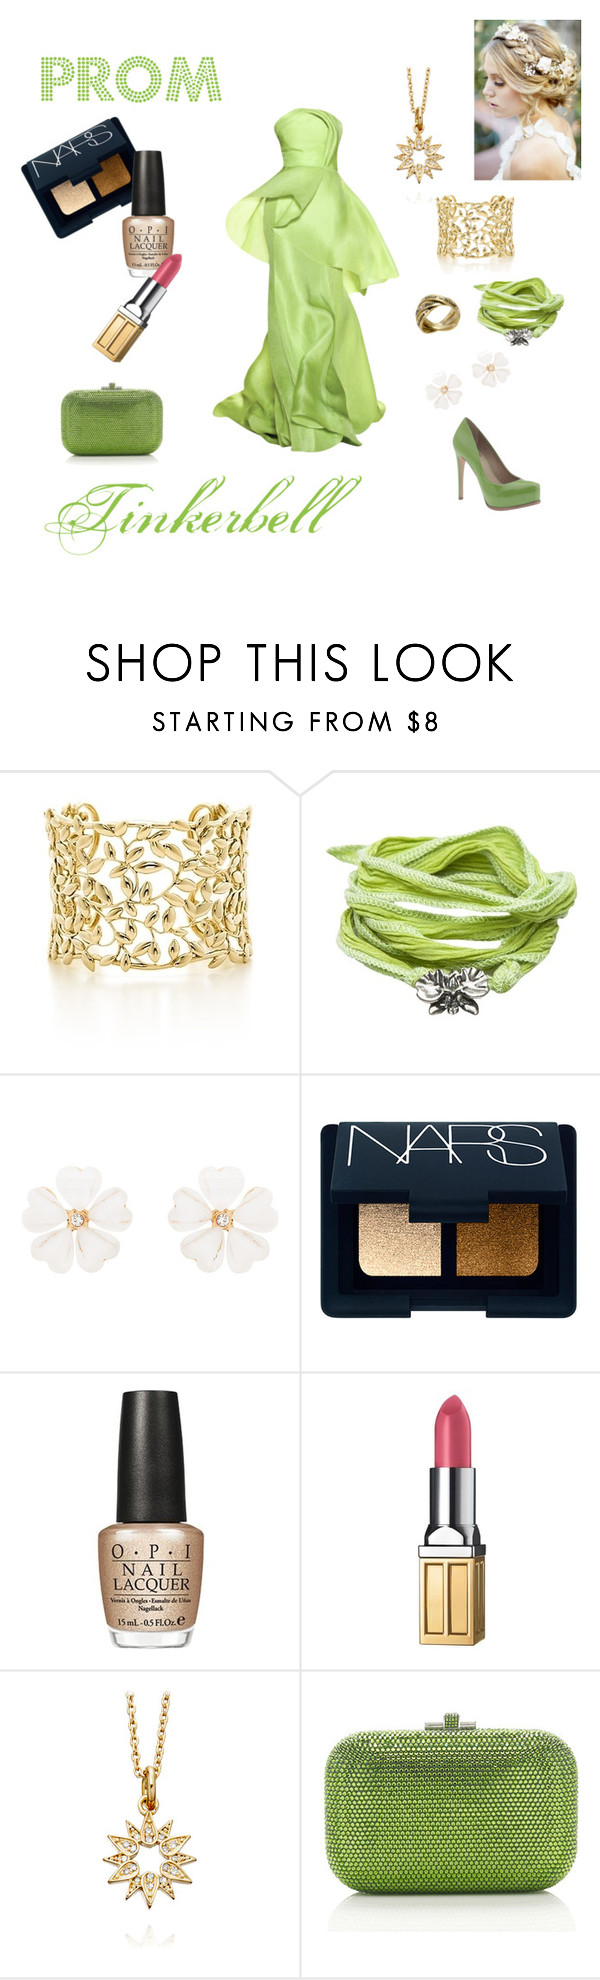 """""""Tinkerbell"""" by neverland-dreamer-821 ❤ liked on Polyvore featuring Lela Rose, Paloma Picasso, Catherine Michiels, Forever New, NARS Cosmetics, Pour La Victoire, OPI, Elizabeth Arden, Astley Clarke and Judith Leiber"""